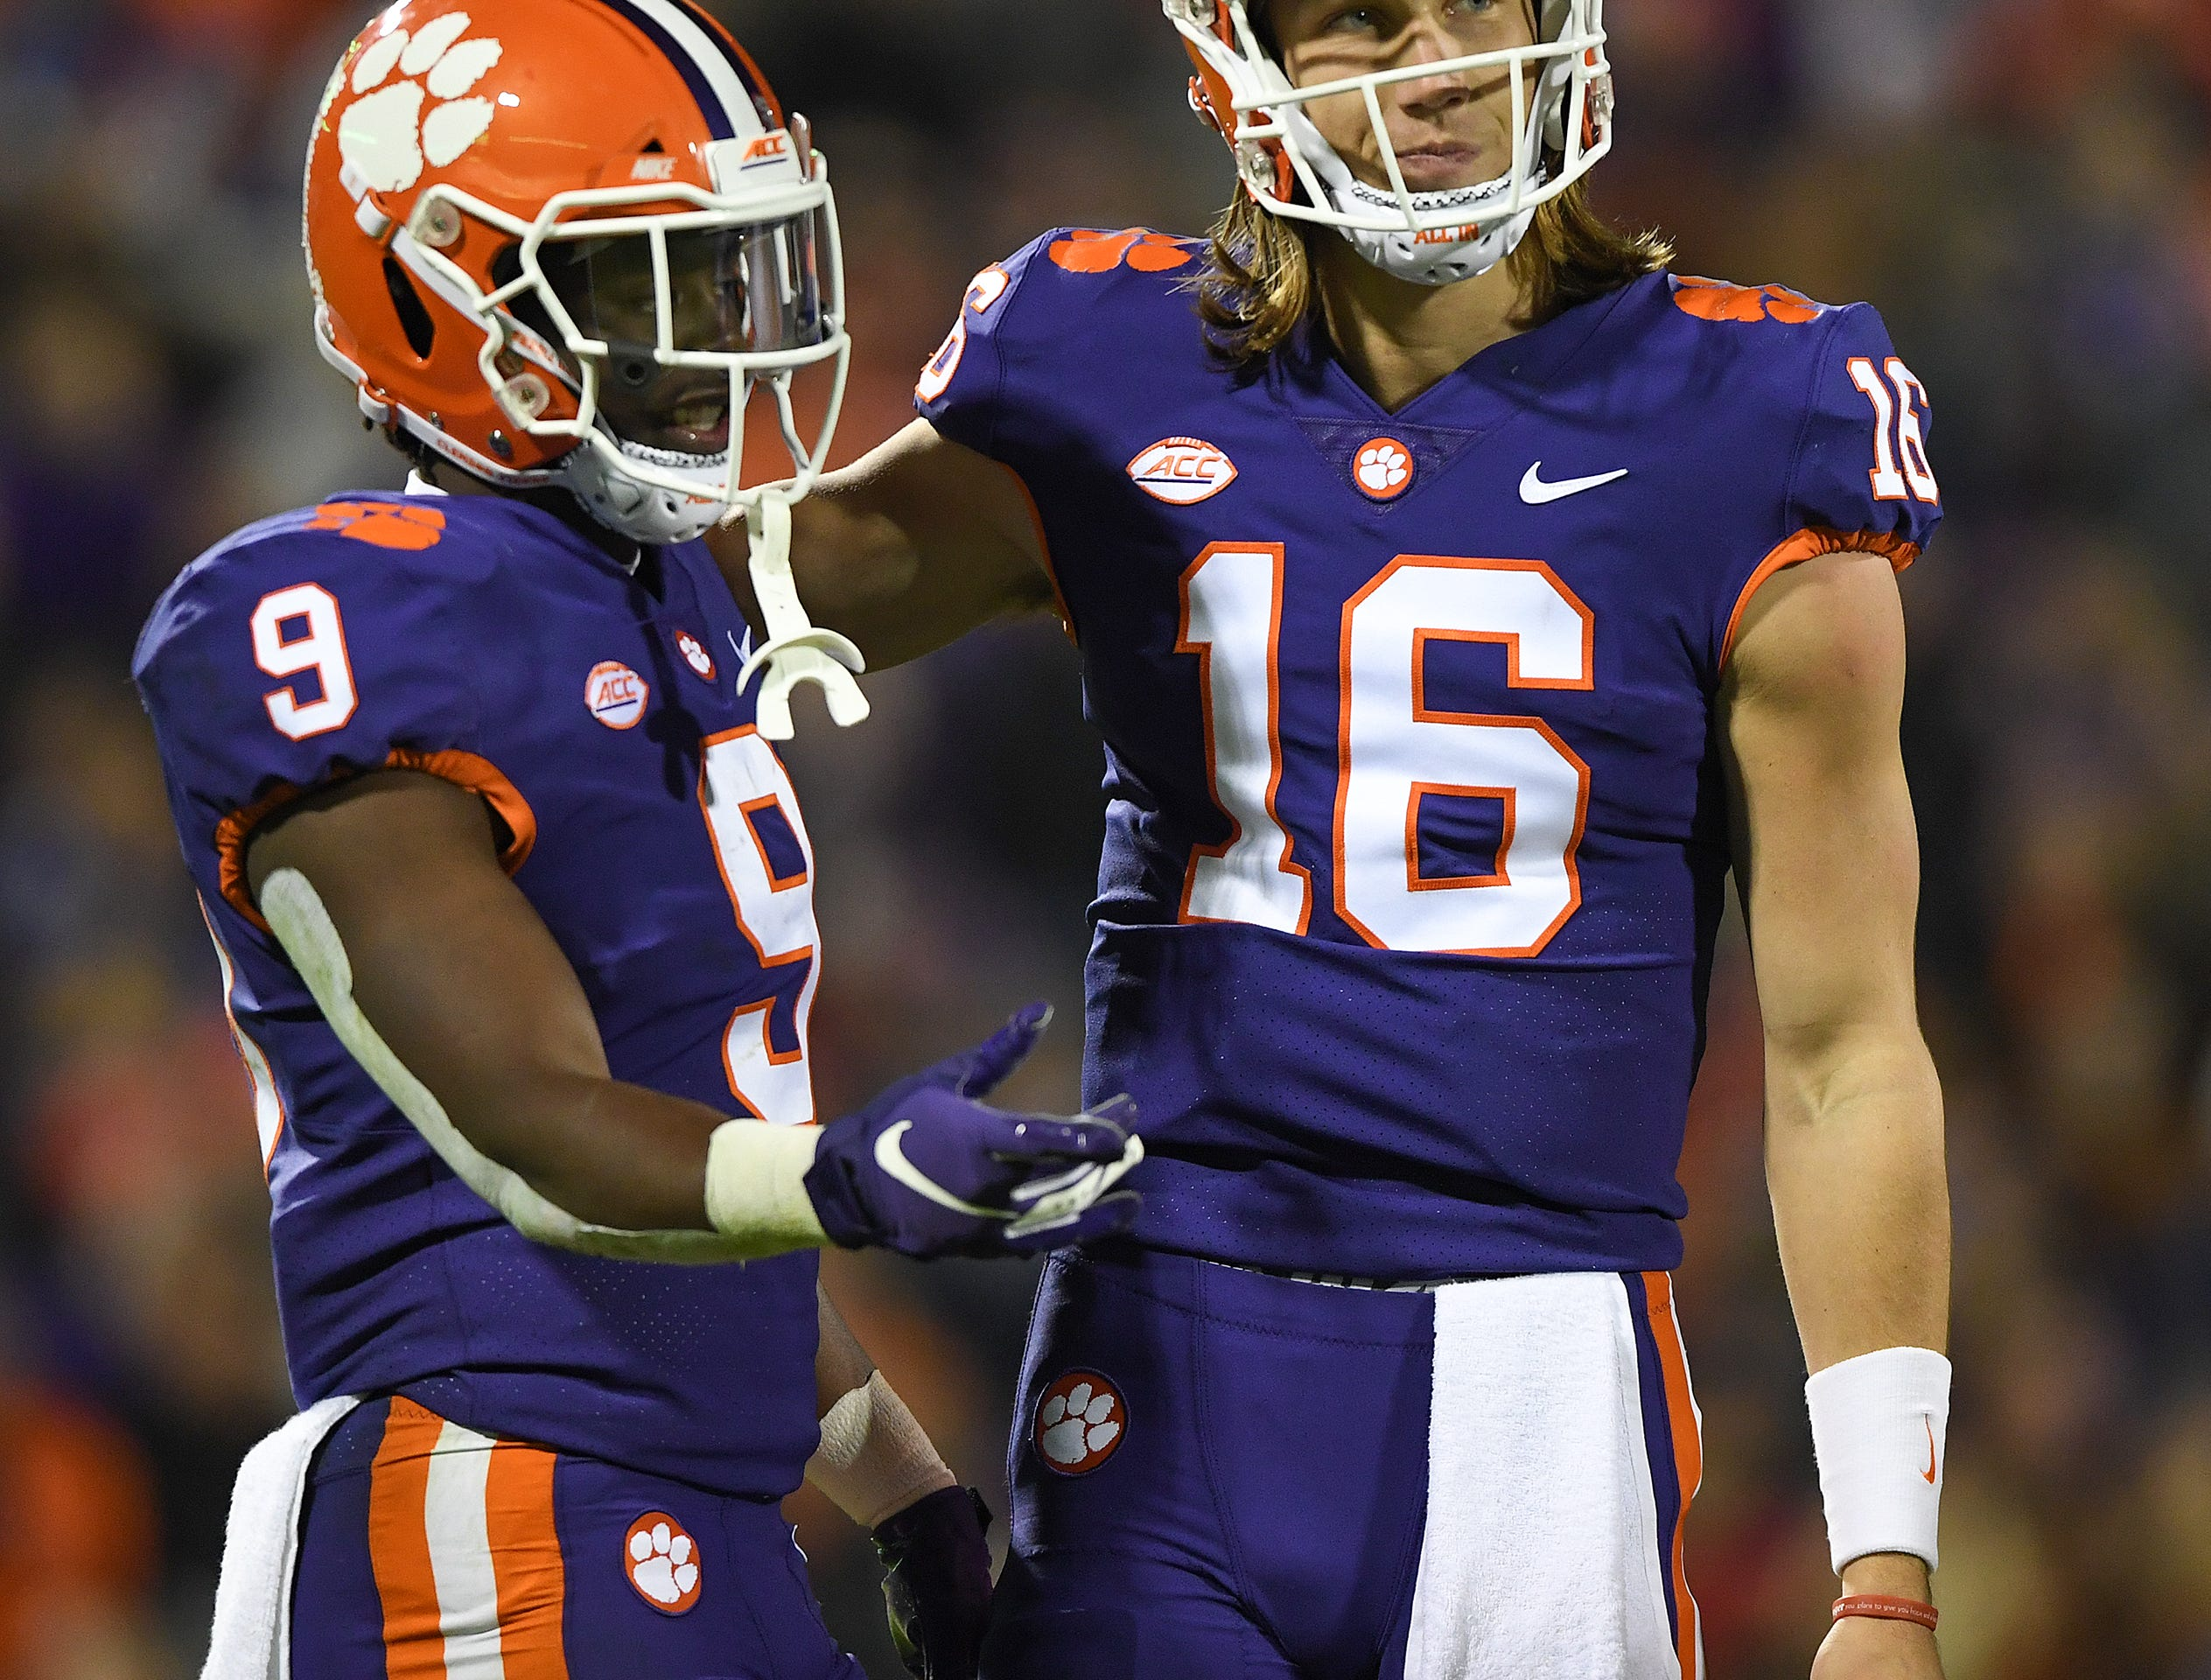 Clemson quarterback Trevor Lawrence (16) with running back Travis Etienne (9) during the 2nd quarter Saturday, November 17, 2018 at Clemson's Memorial Stadium.